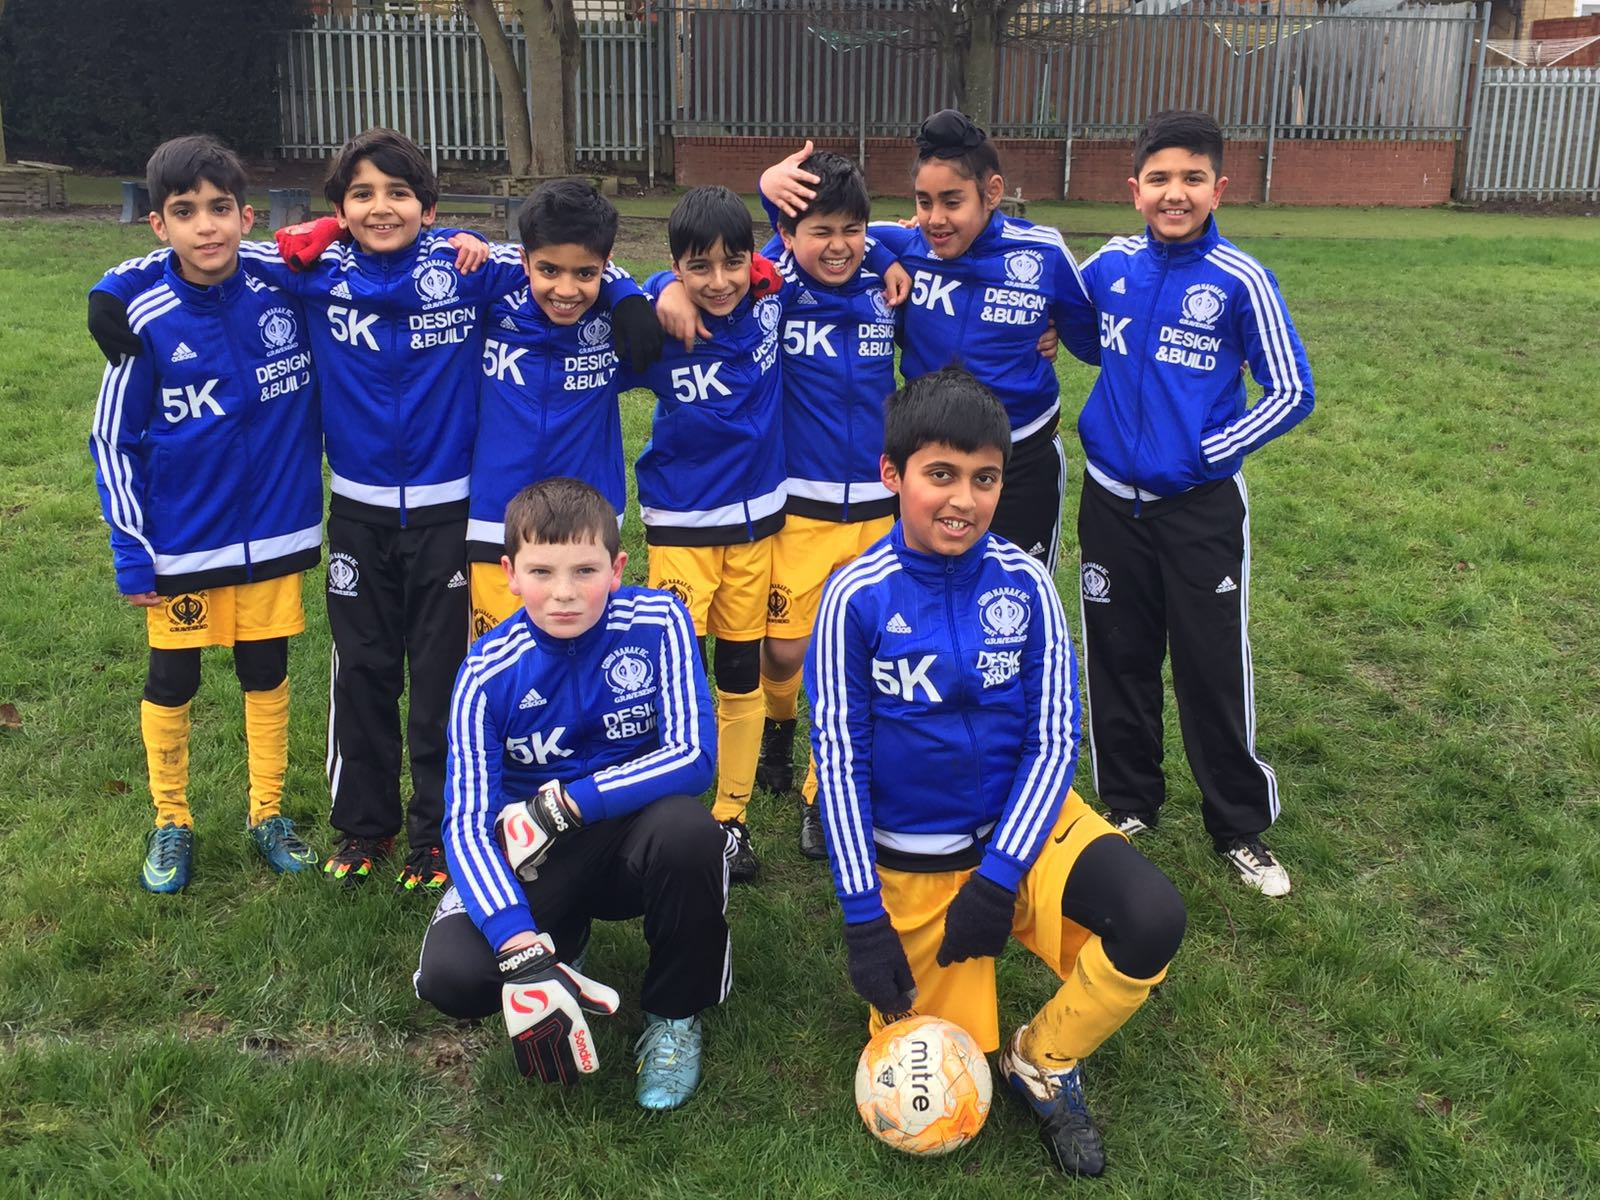 UNDER 13 YELLOW – SEASON 2018/19